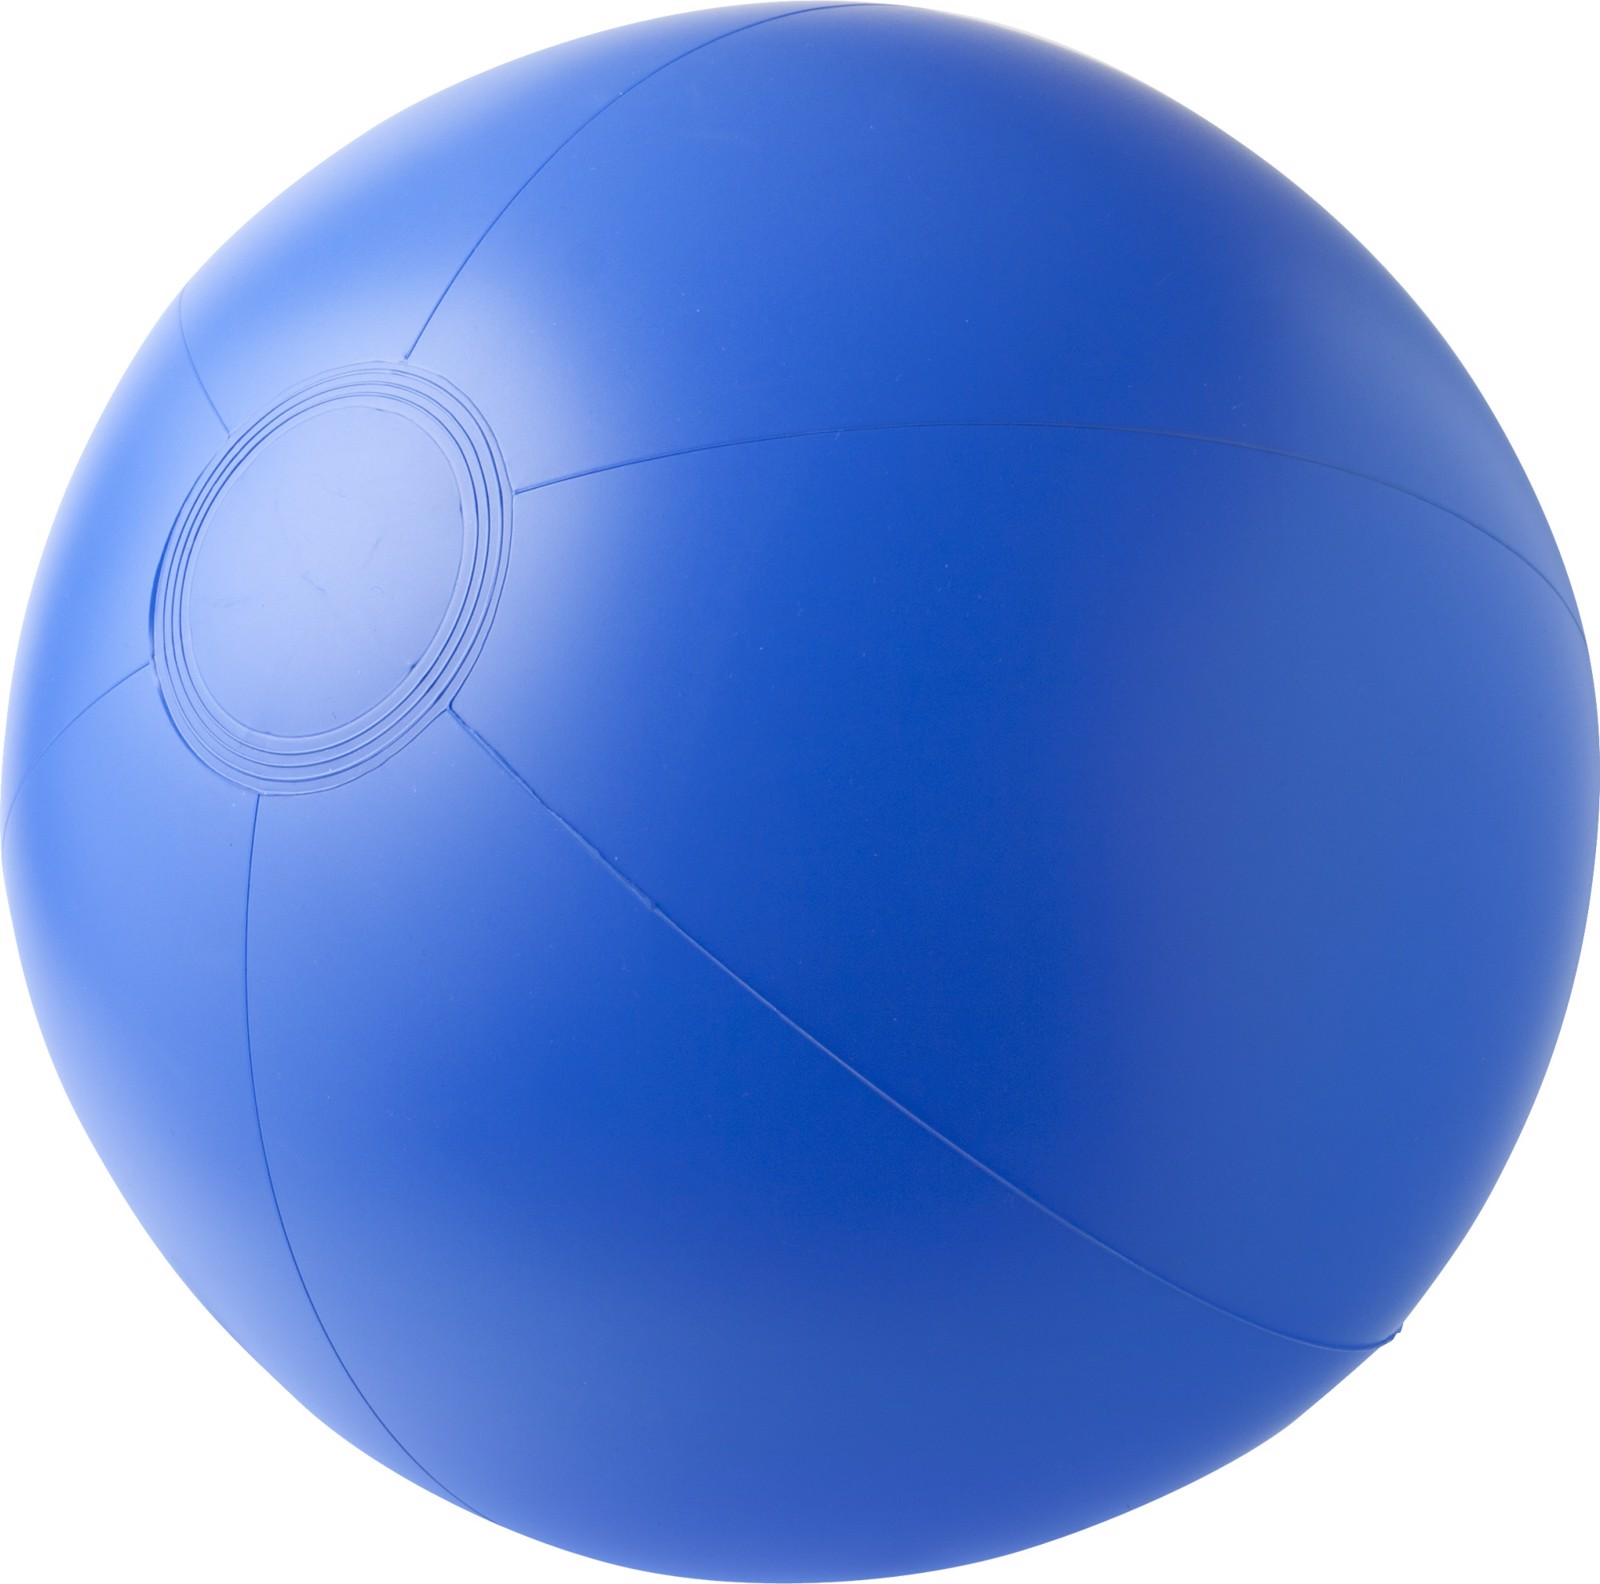 PVC beach ball - Blue